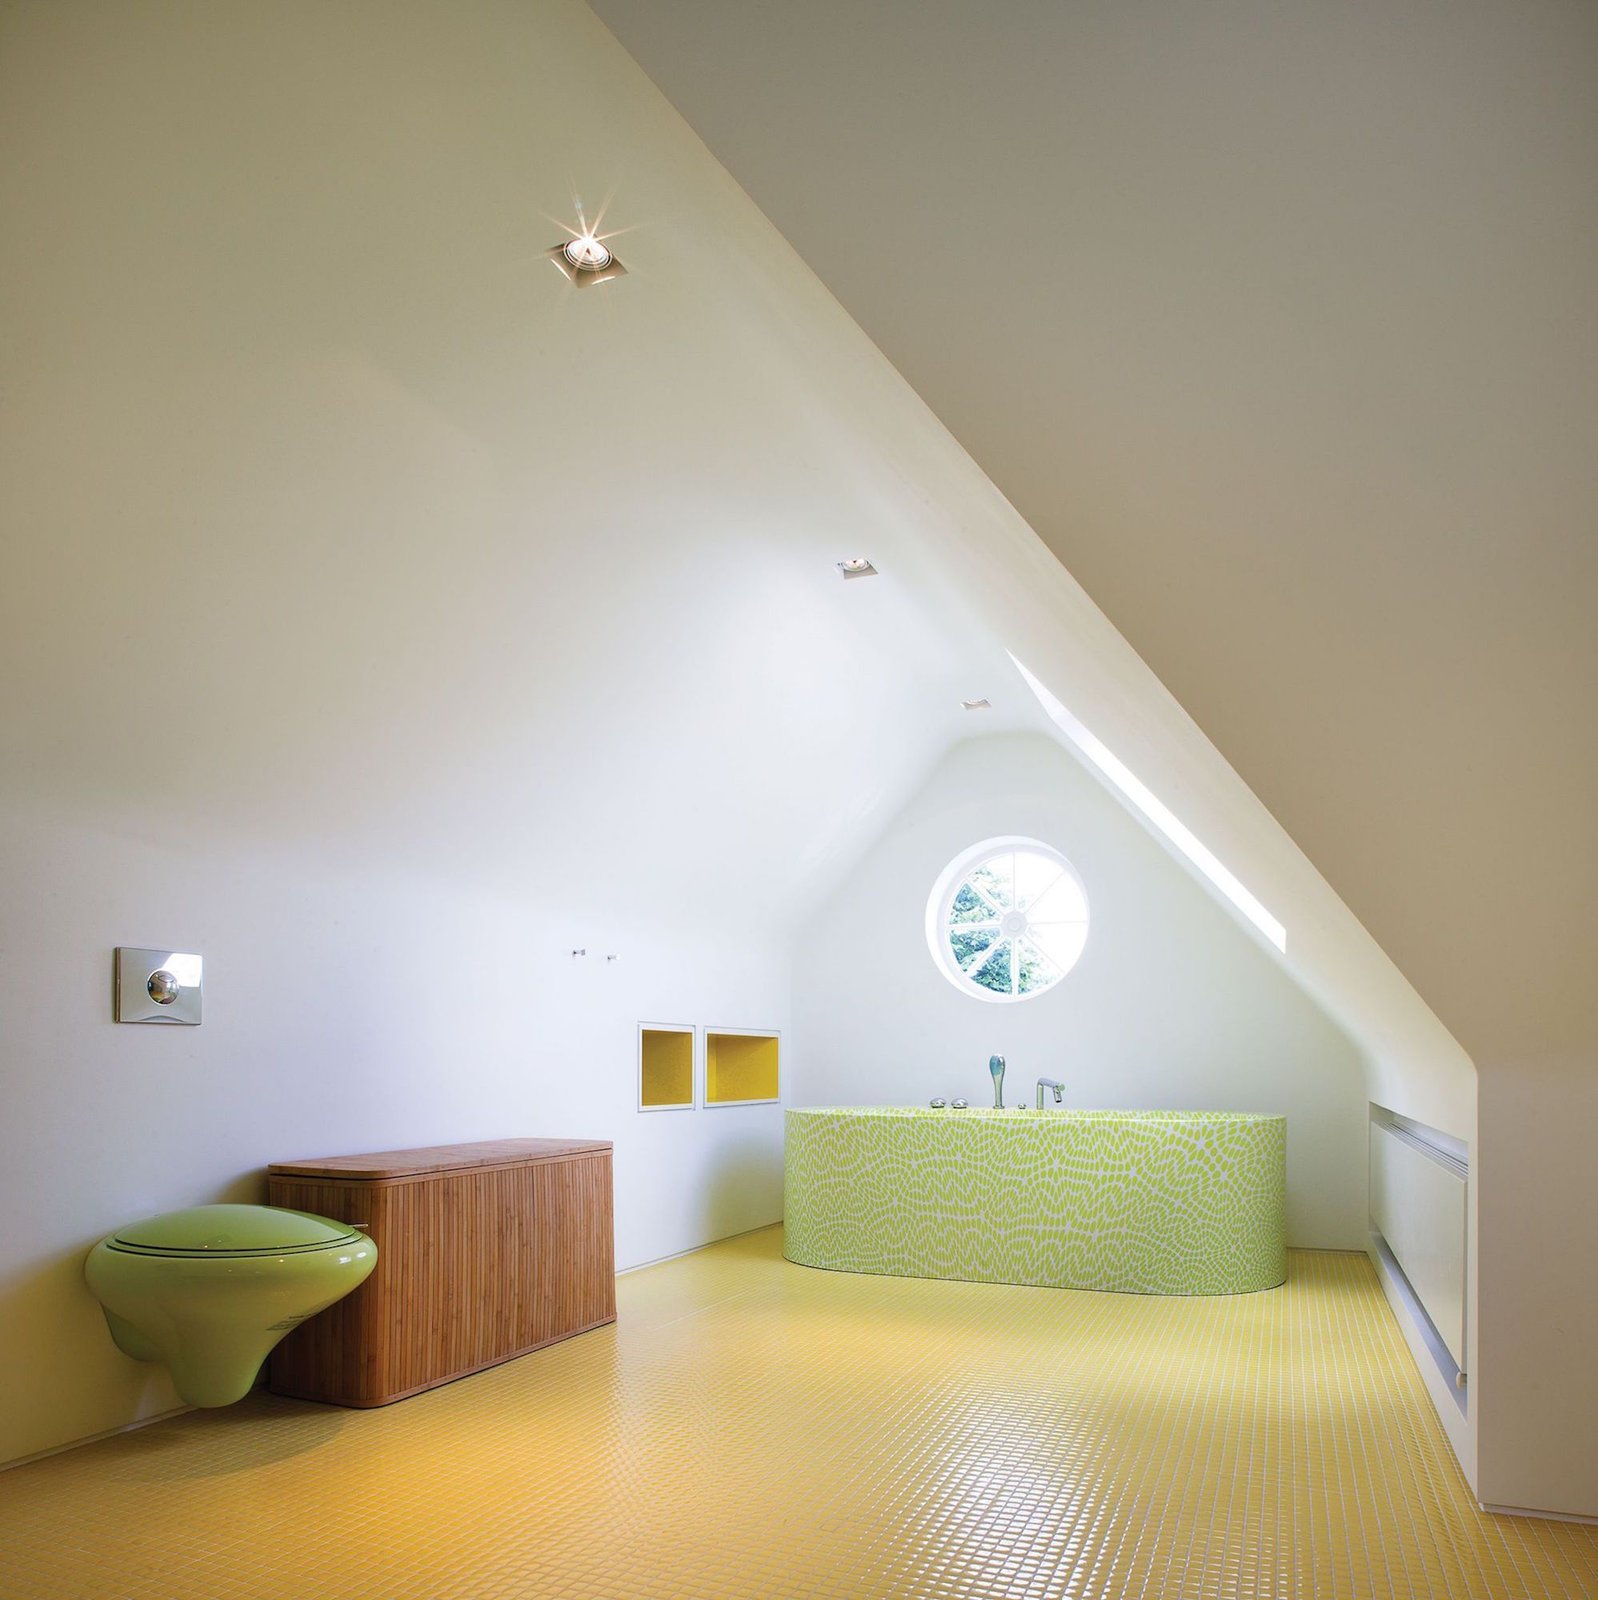 Tagged: Storage, Shelves, Table, Chair, One Piece Toilet, Bath Room, Recessed Lighting, Ceramic Tile Floor, Soaking Tub, and Freestanding Tub.  Photo 9 of 13 in Bright Bauhaus Colors Fill This Brick Edwardian House in London